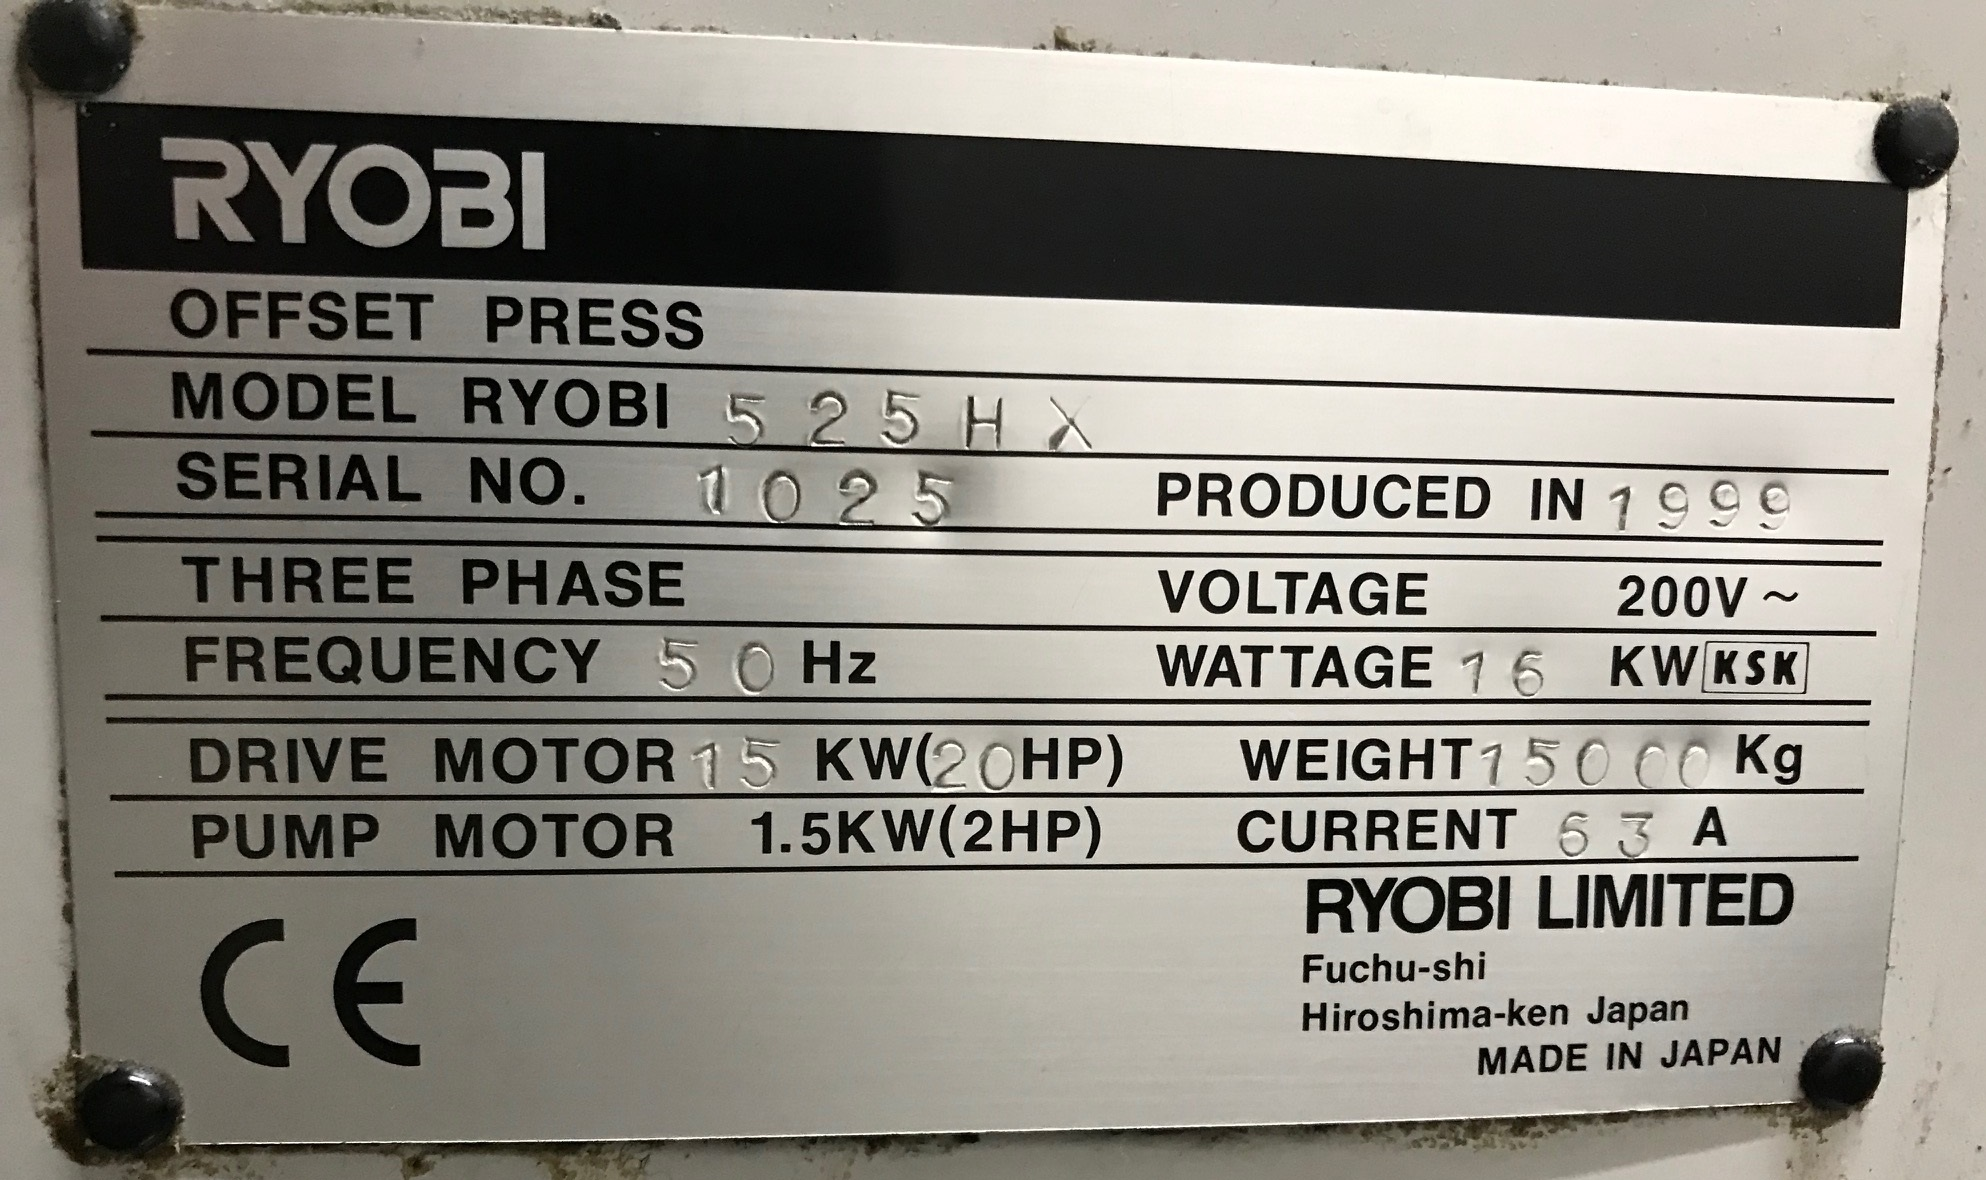 RYOBI 525HX-D WITH IN LINE COATER, SN # 1025, YEAR 1999 16